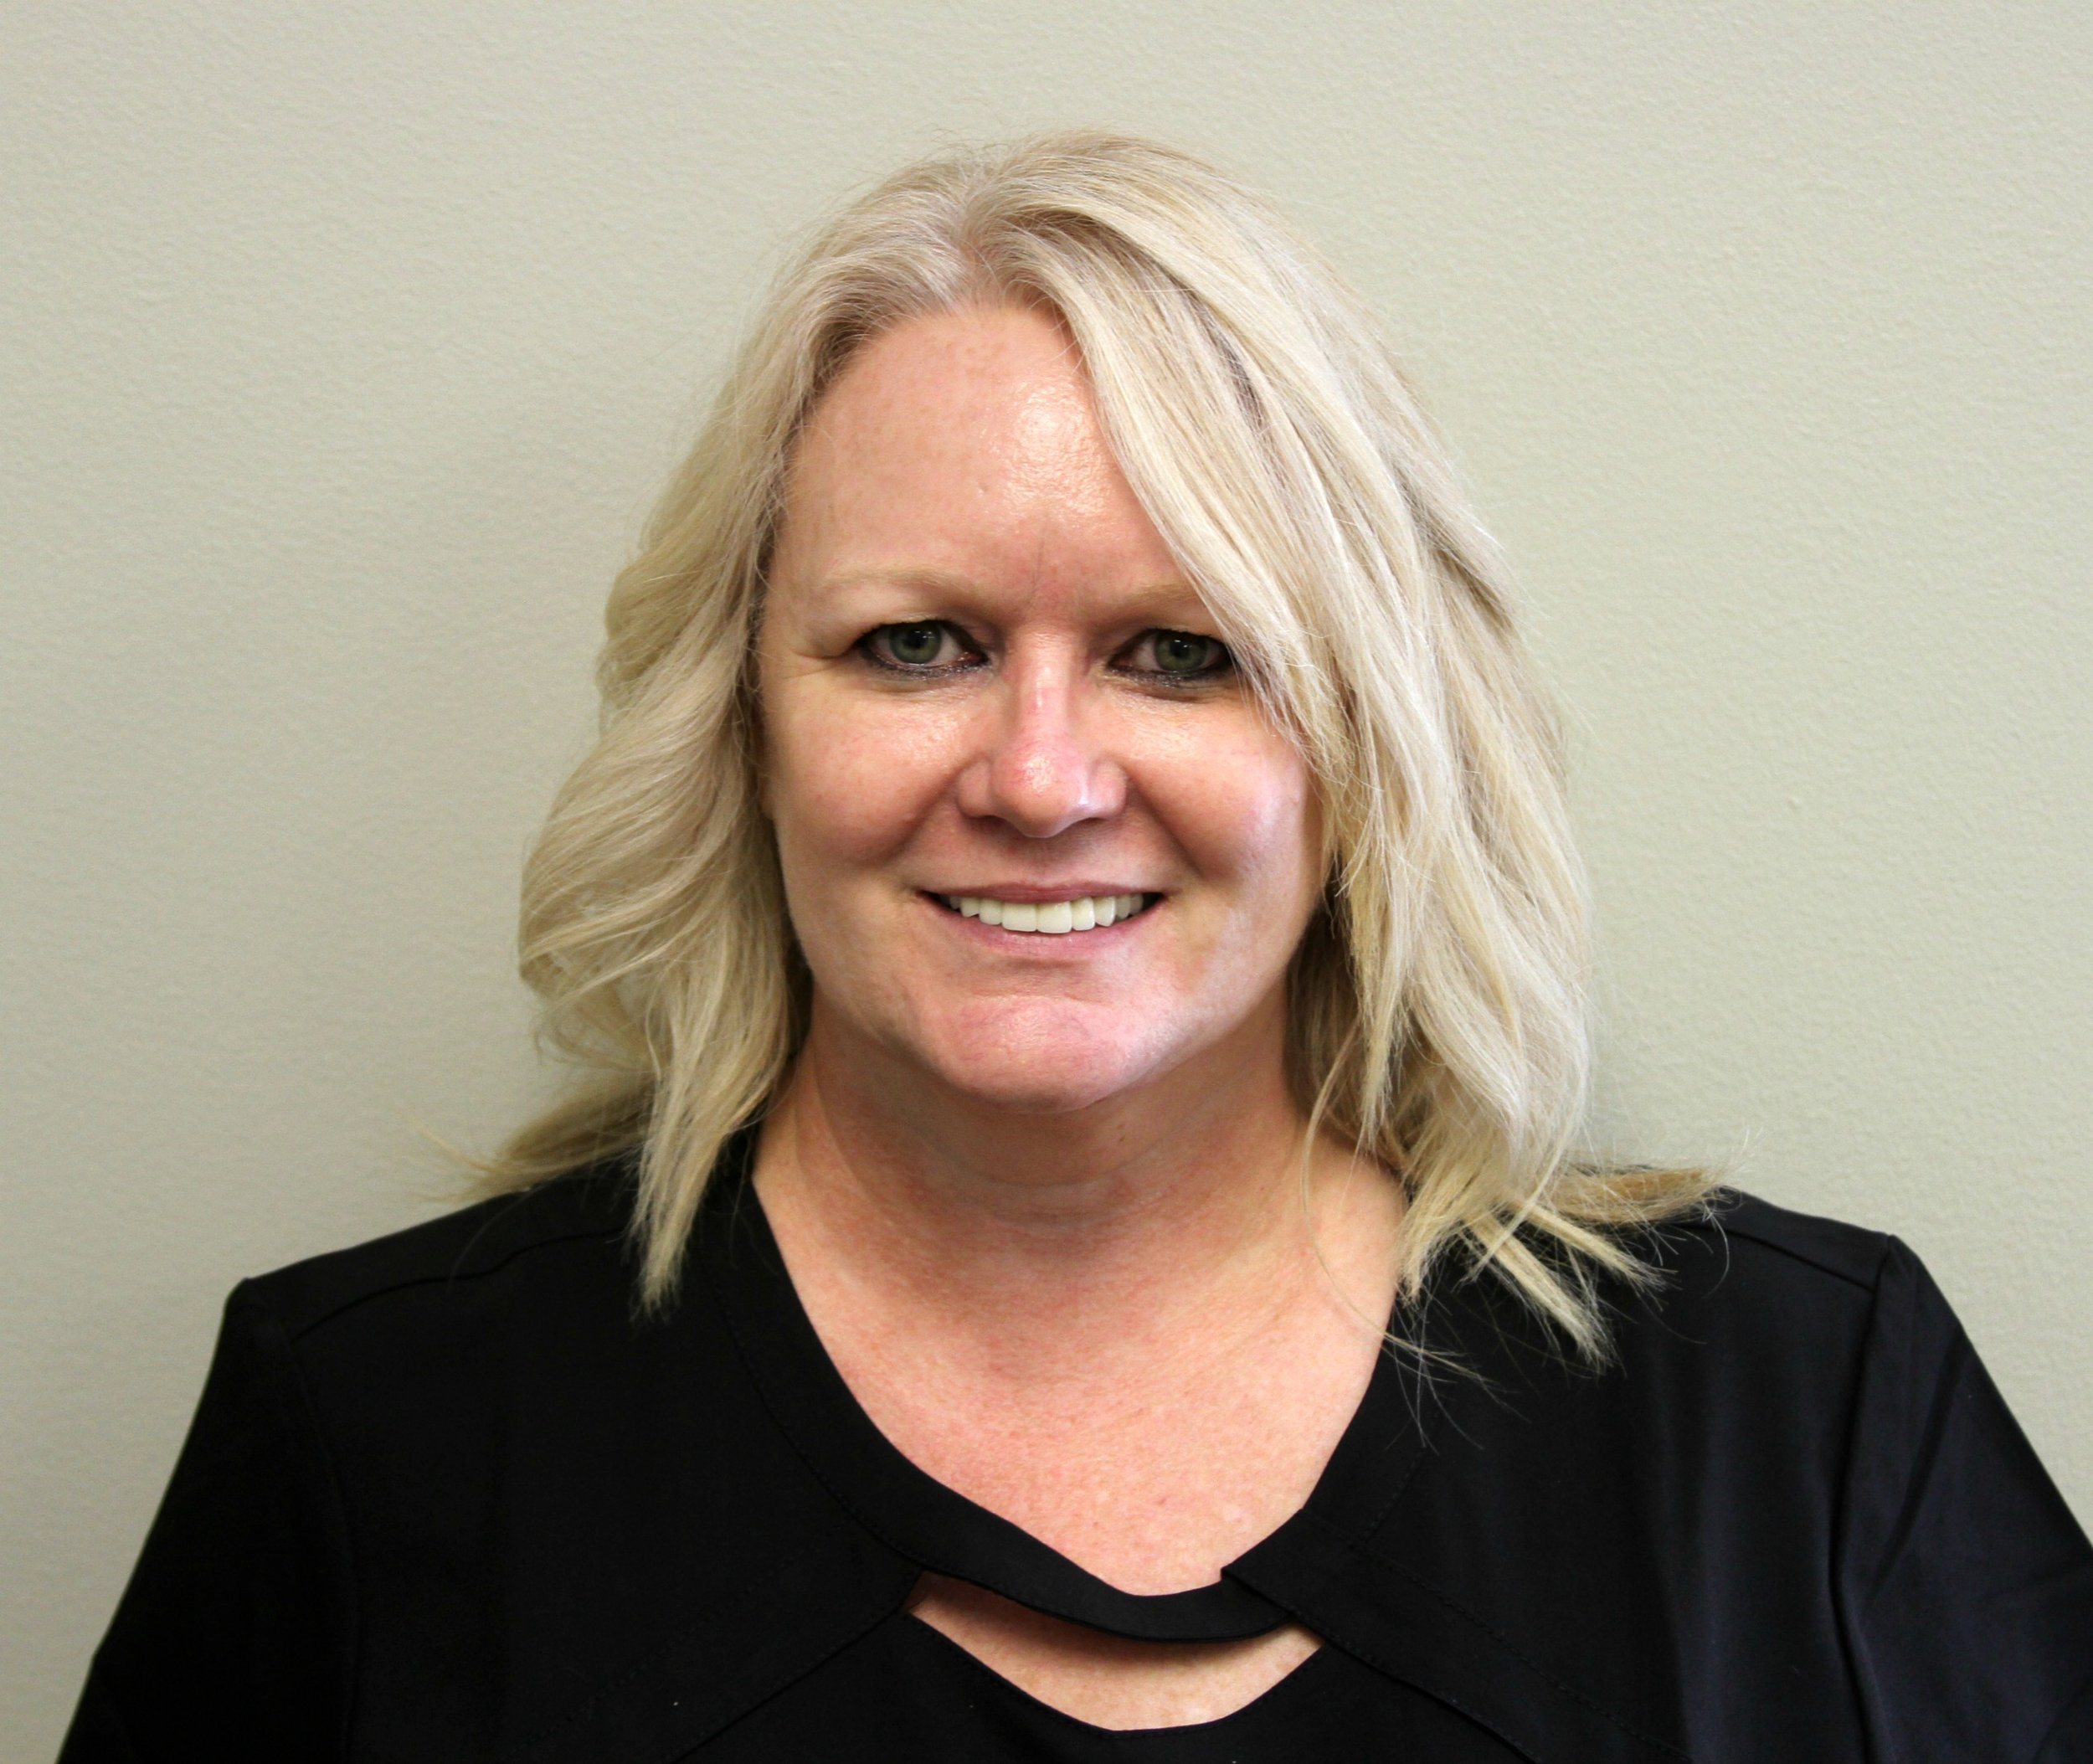 Susan is part of our administrative staff team, she has been with our office for 1 year but has been in the medical industry for 13 years. In her free time she enjoys spending time with her family which includes her two children, her son-in-law, her granddaughter, and her cat named Gilbert. When she isn't spending time with her family she likes to read, watch movies, and spend time with her friends.